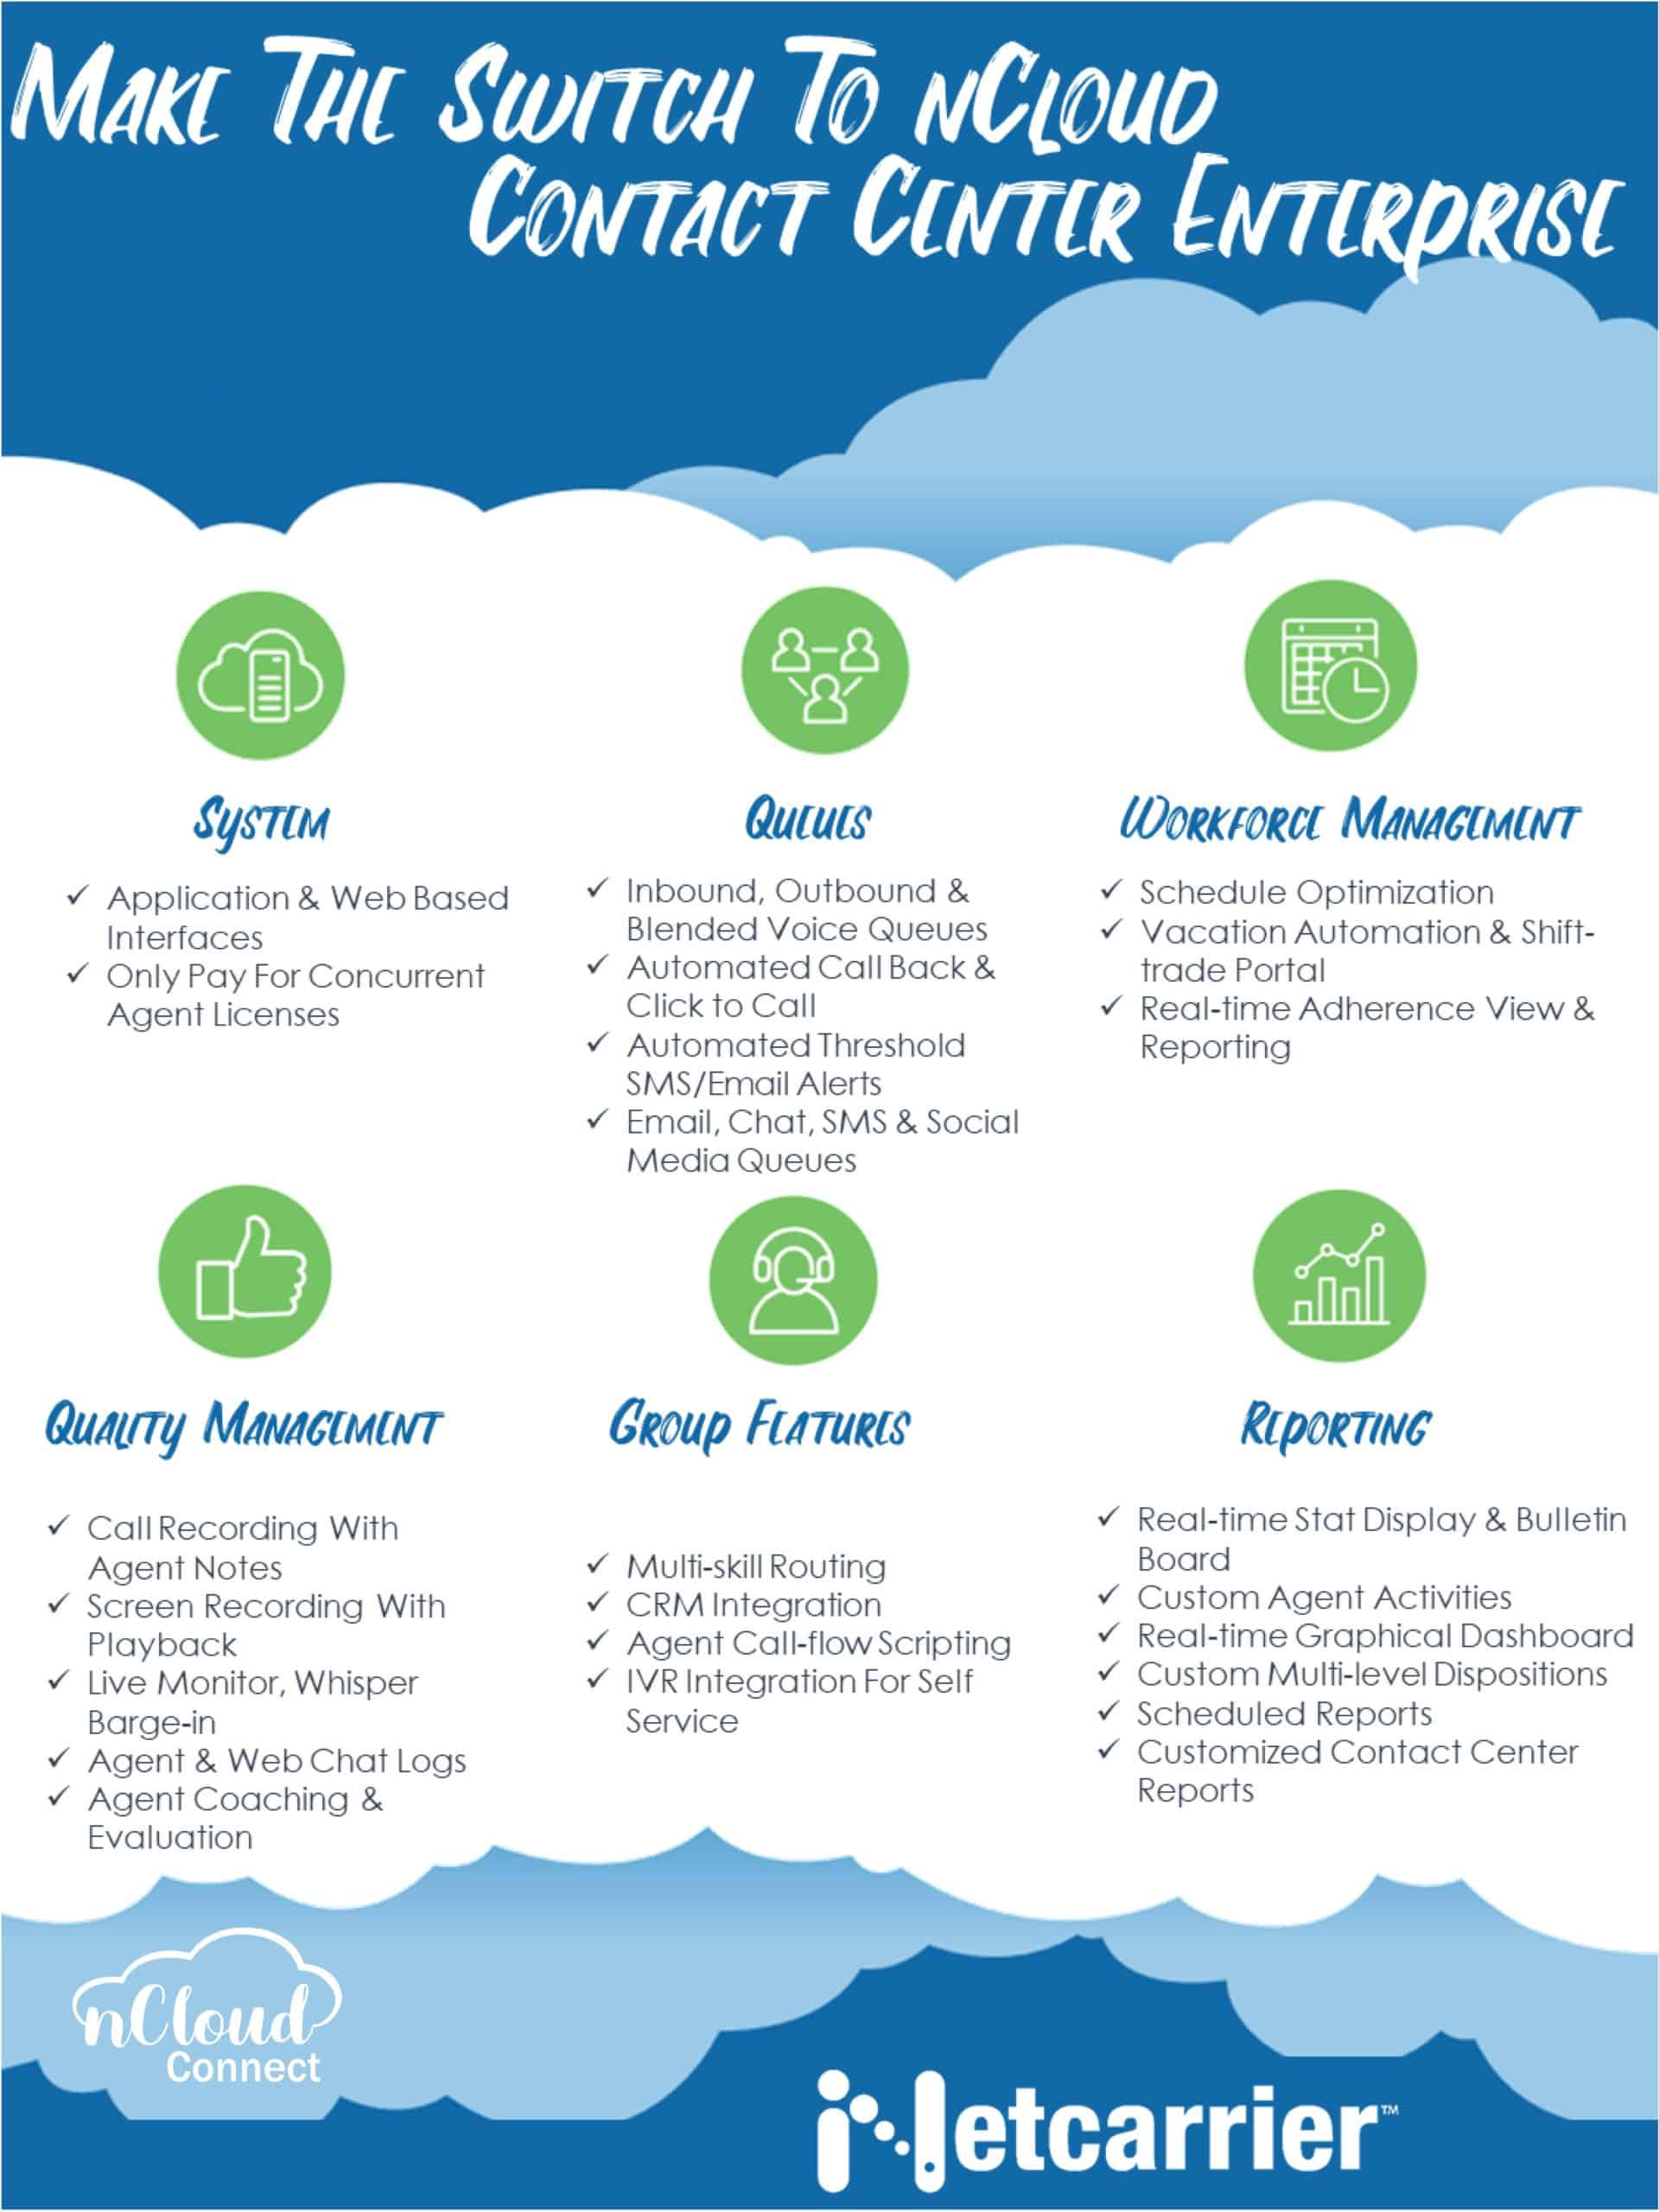 Advantages of Moving to Contact Center Enterprise Solution